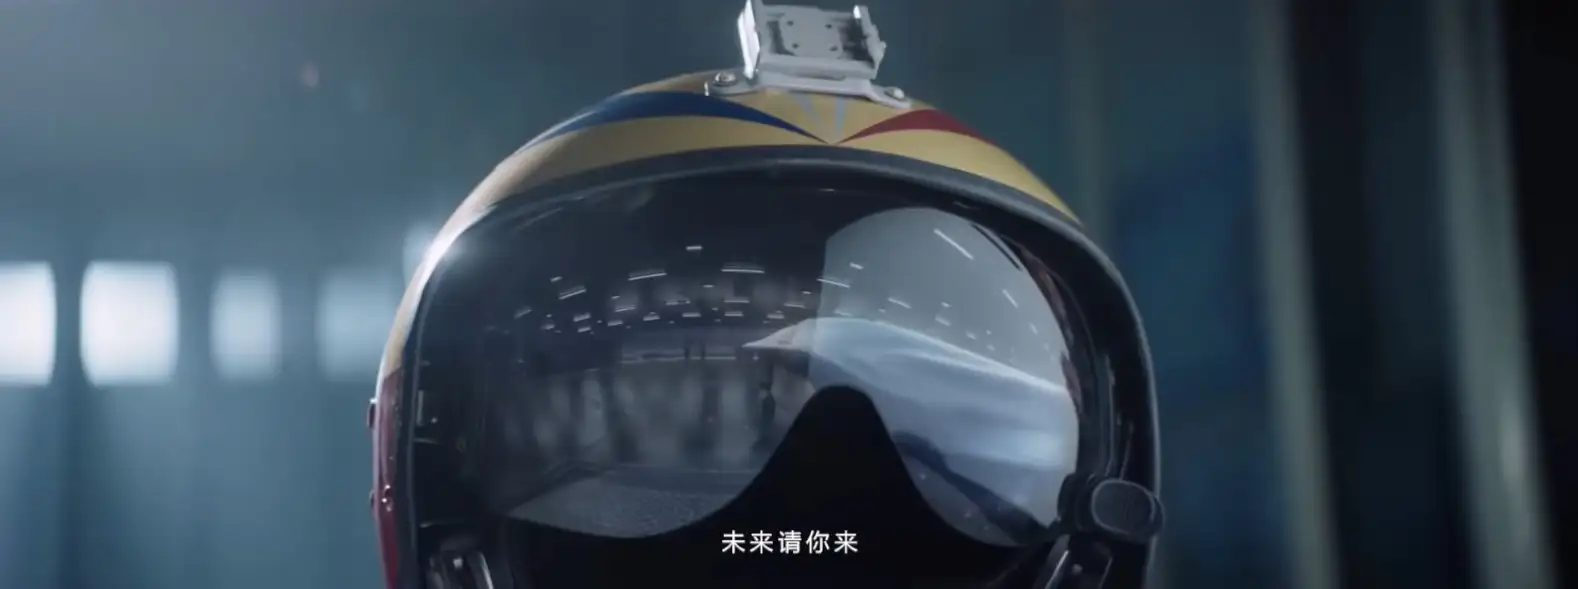 China's PLA Reveals Outline And Nose Of H-20 Stealth Bomber In Hype Recruitment Video